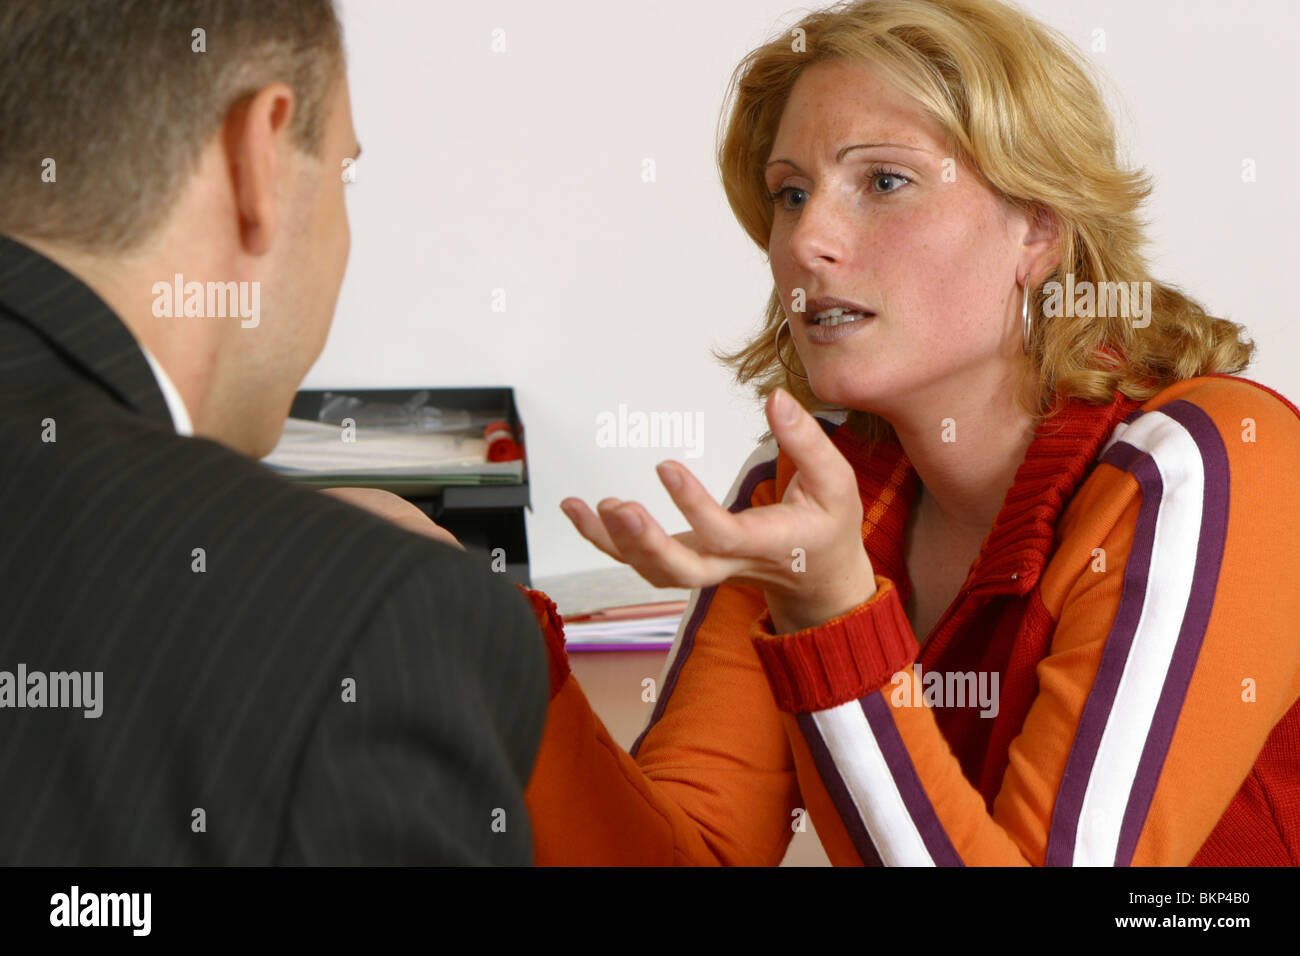 job interview going bad w stock photo royalty image job interview going bad w